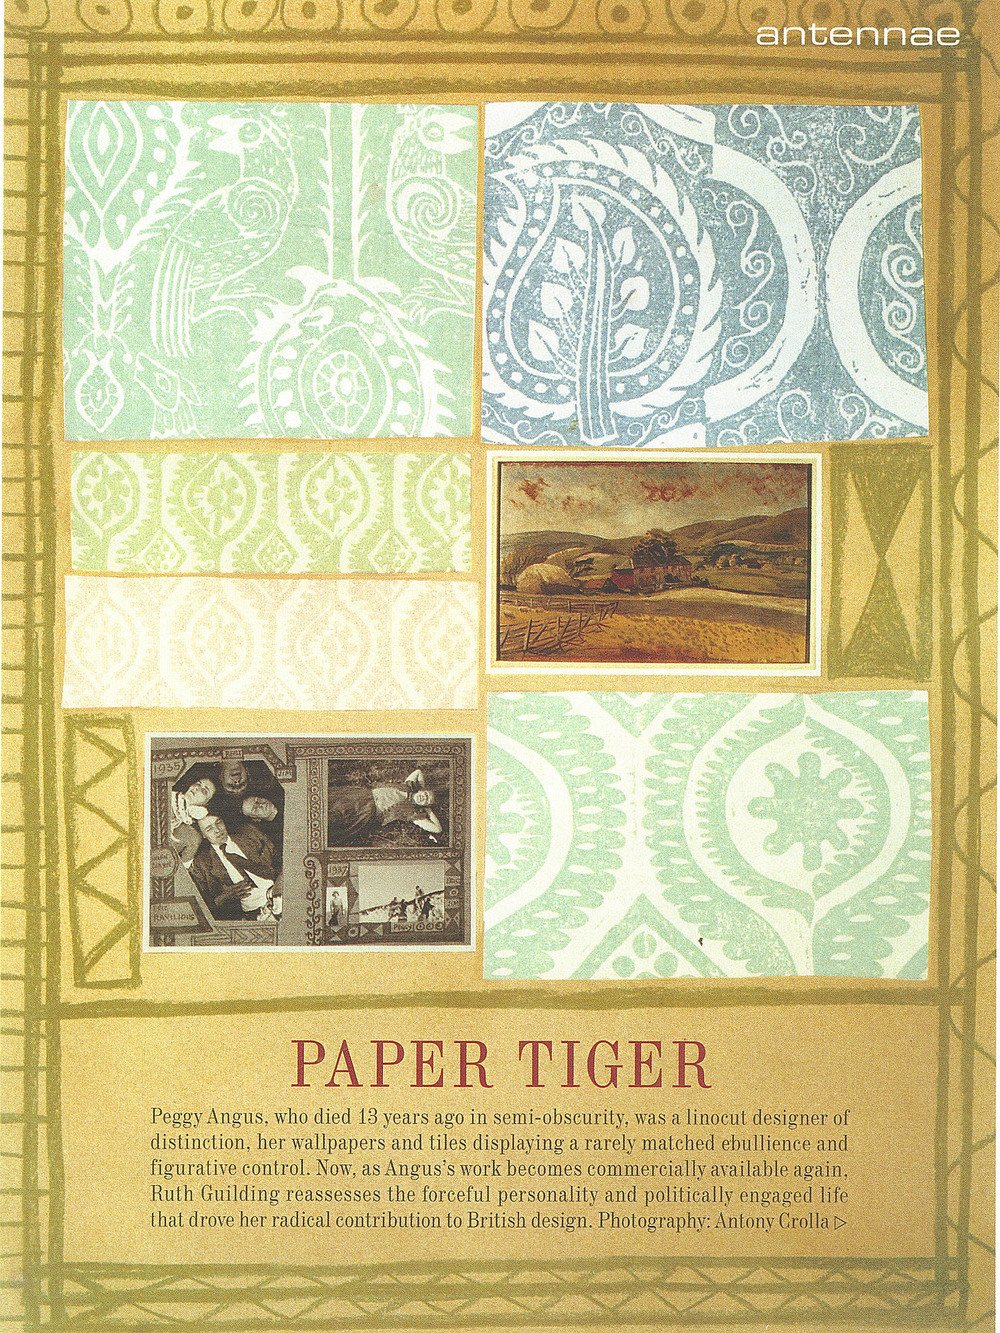 Peggy Angus Paper Tiger Page 1 of 3.jpg